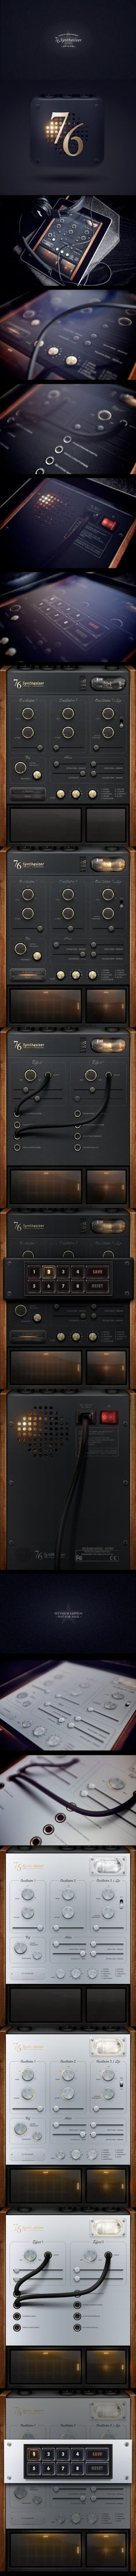 76 Synthesizer is one of the most amazing hyper-realistic skeuomorphic design I've ever seen.   Designed by Jonas Eriksson. http://www.behance.net/JonasEriksson http://www.behance.net/gallery/76-Synthesizer-Final/2402294 http://synth76.com/